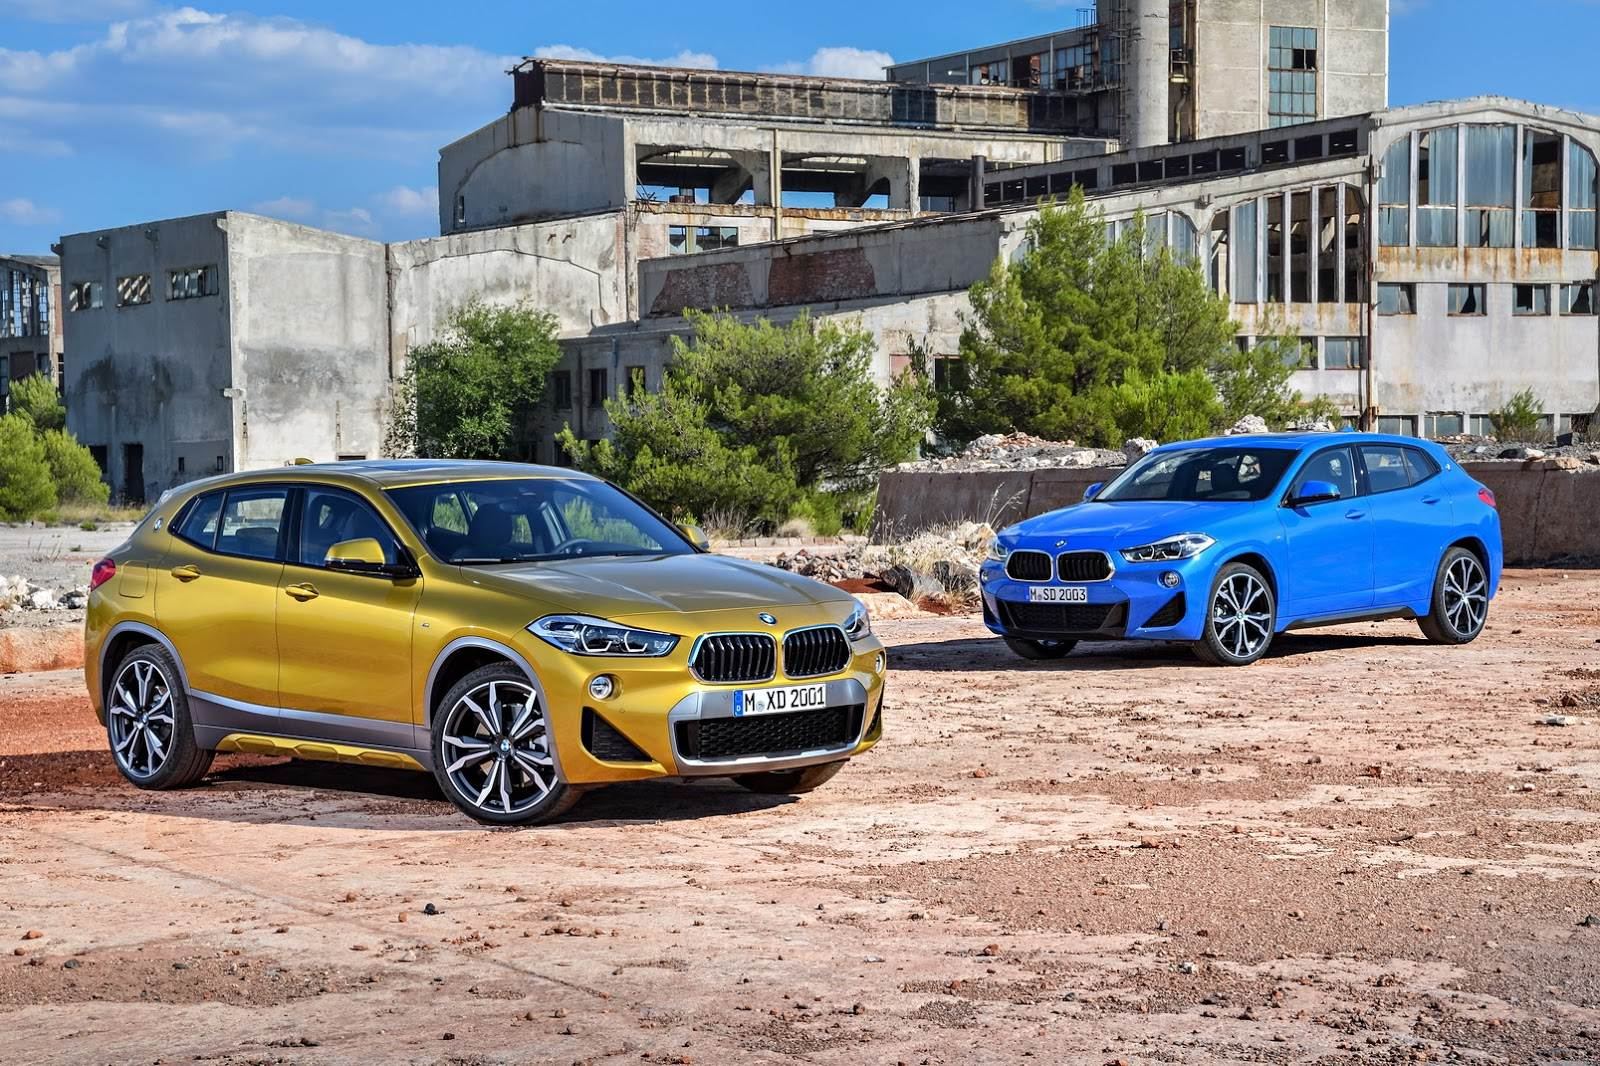 2018 BMW X2 image gallery